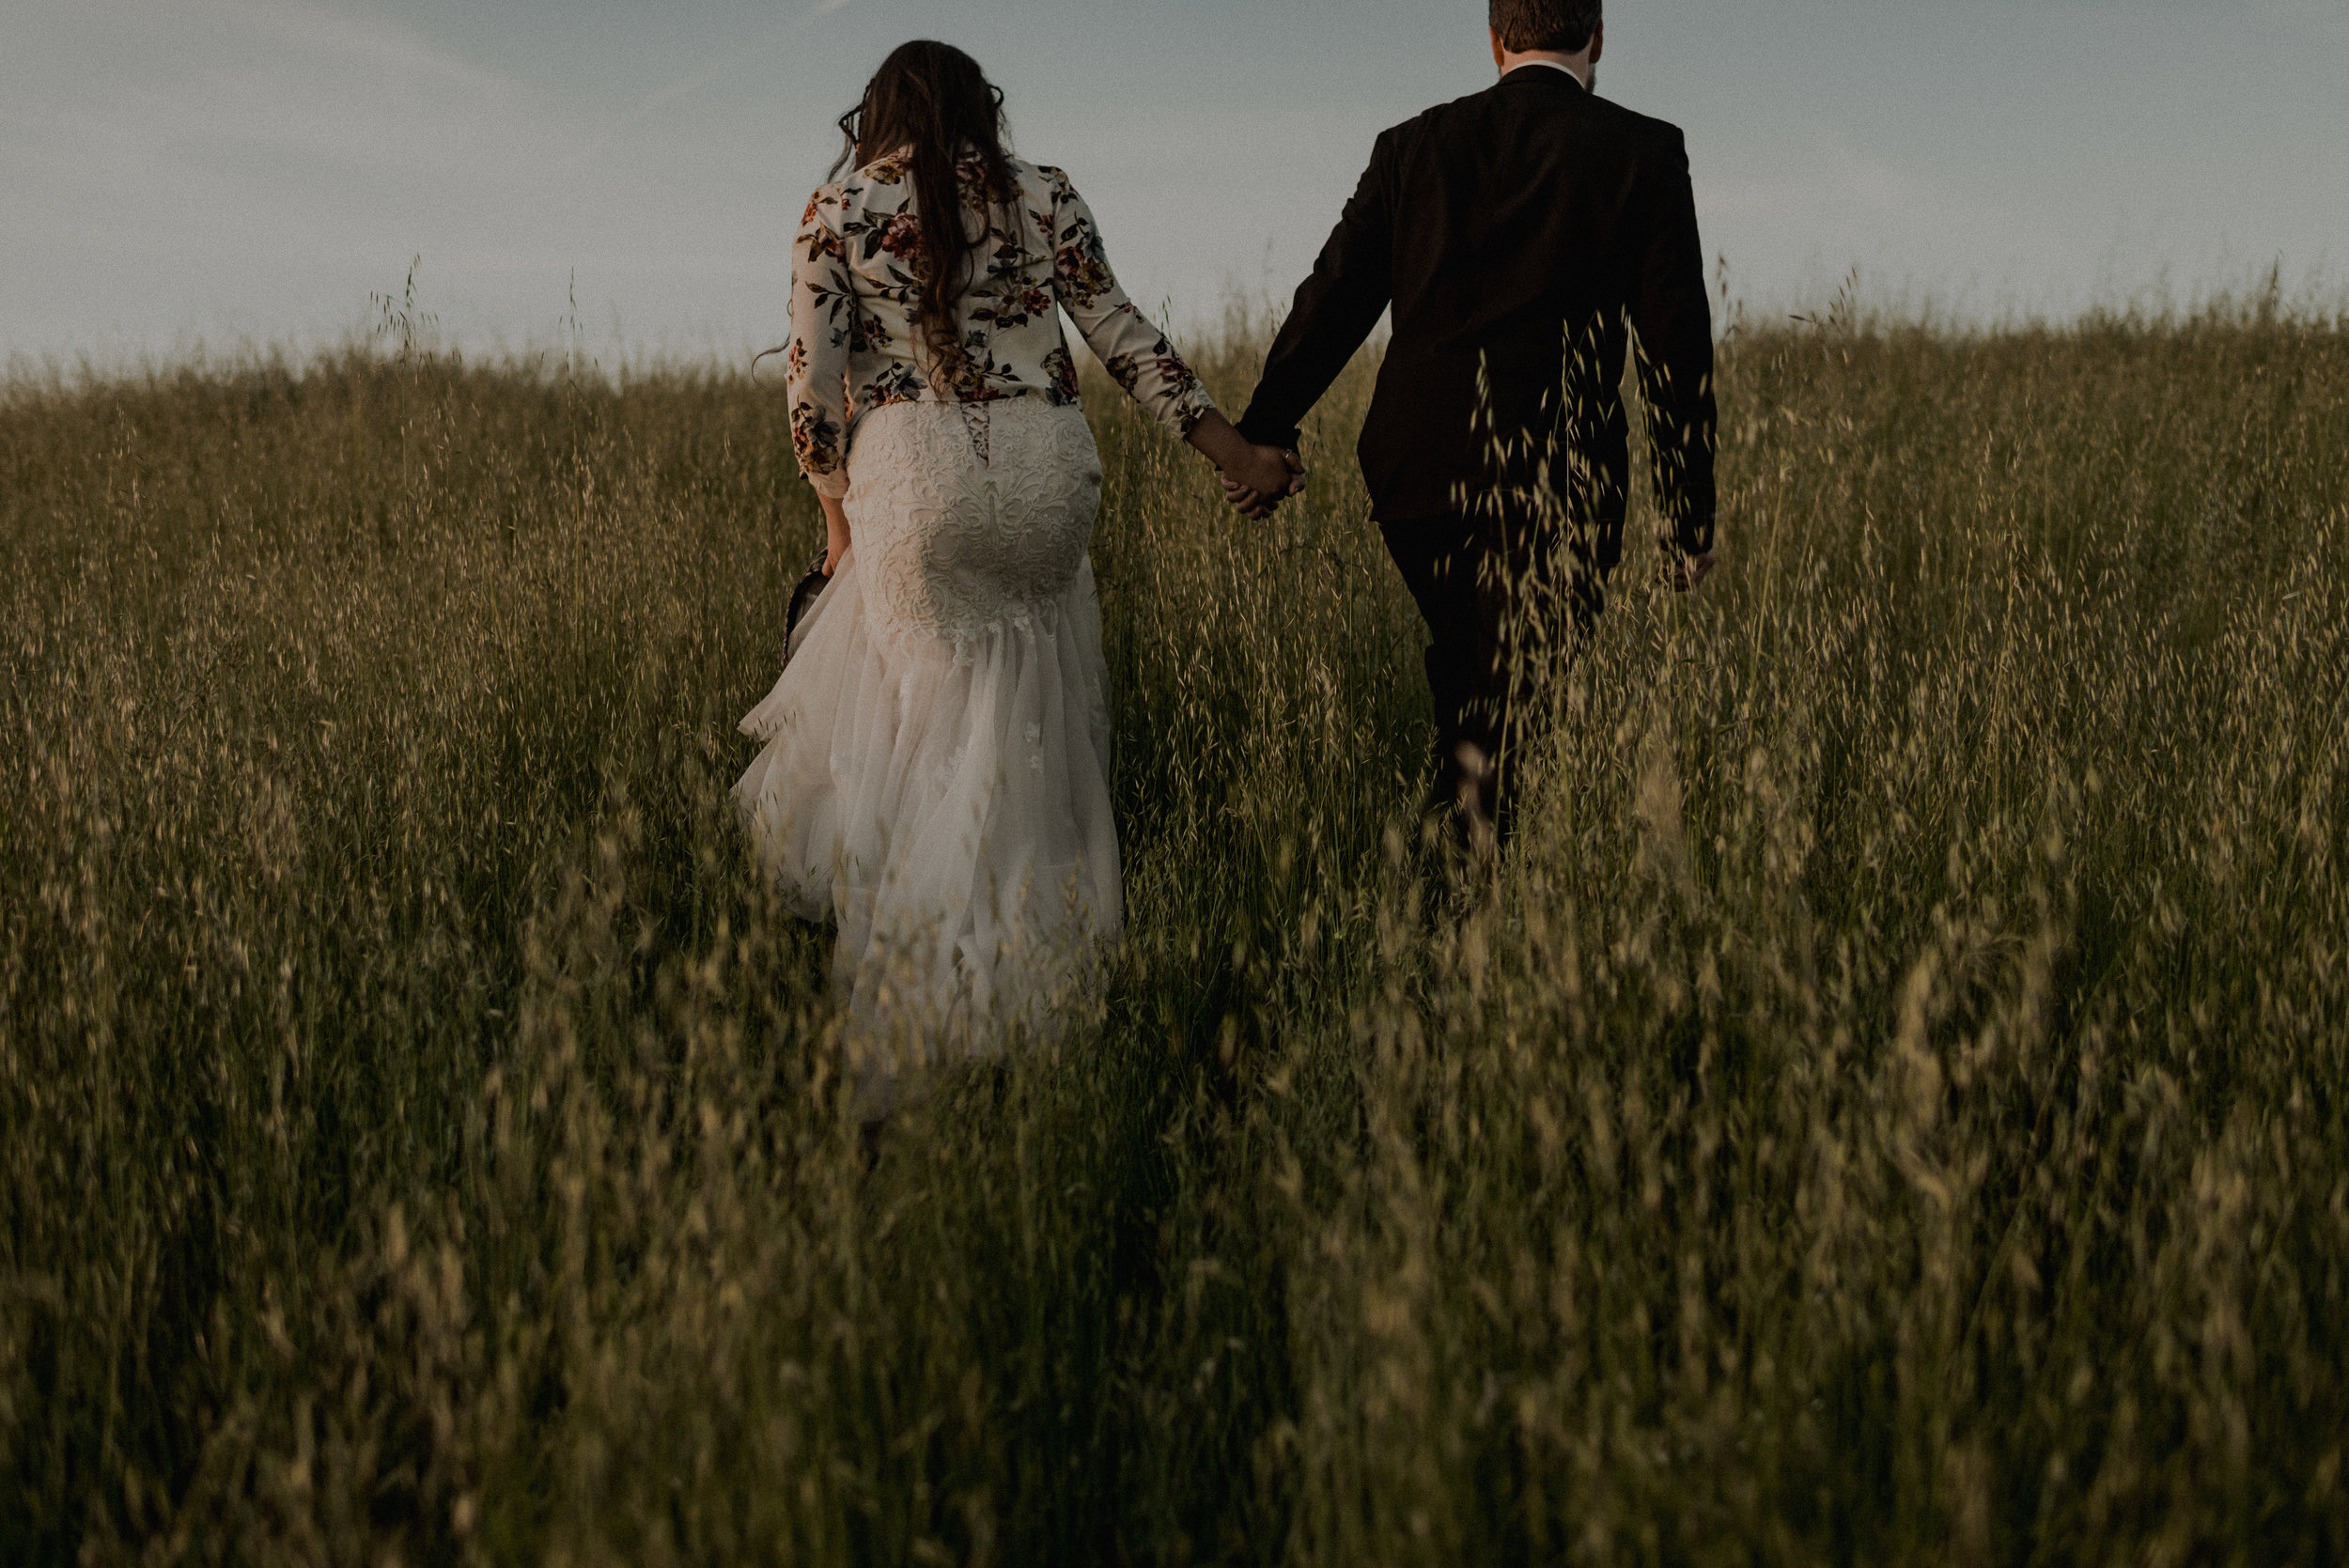 Melissa Cervantes Photography Iowa, Midwest + Destination Wedding Photographer - Borba Wedding-475.jpg